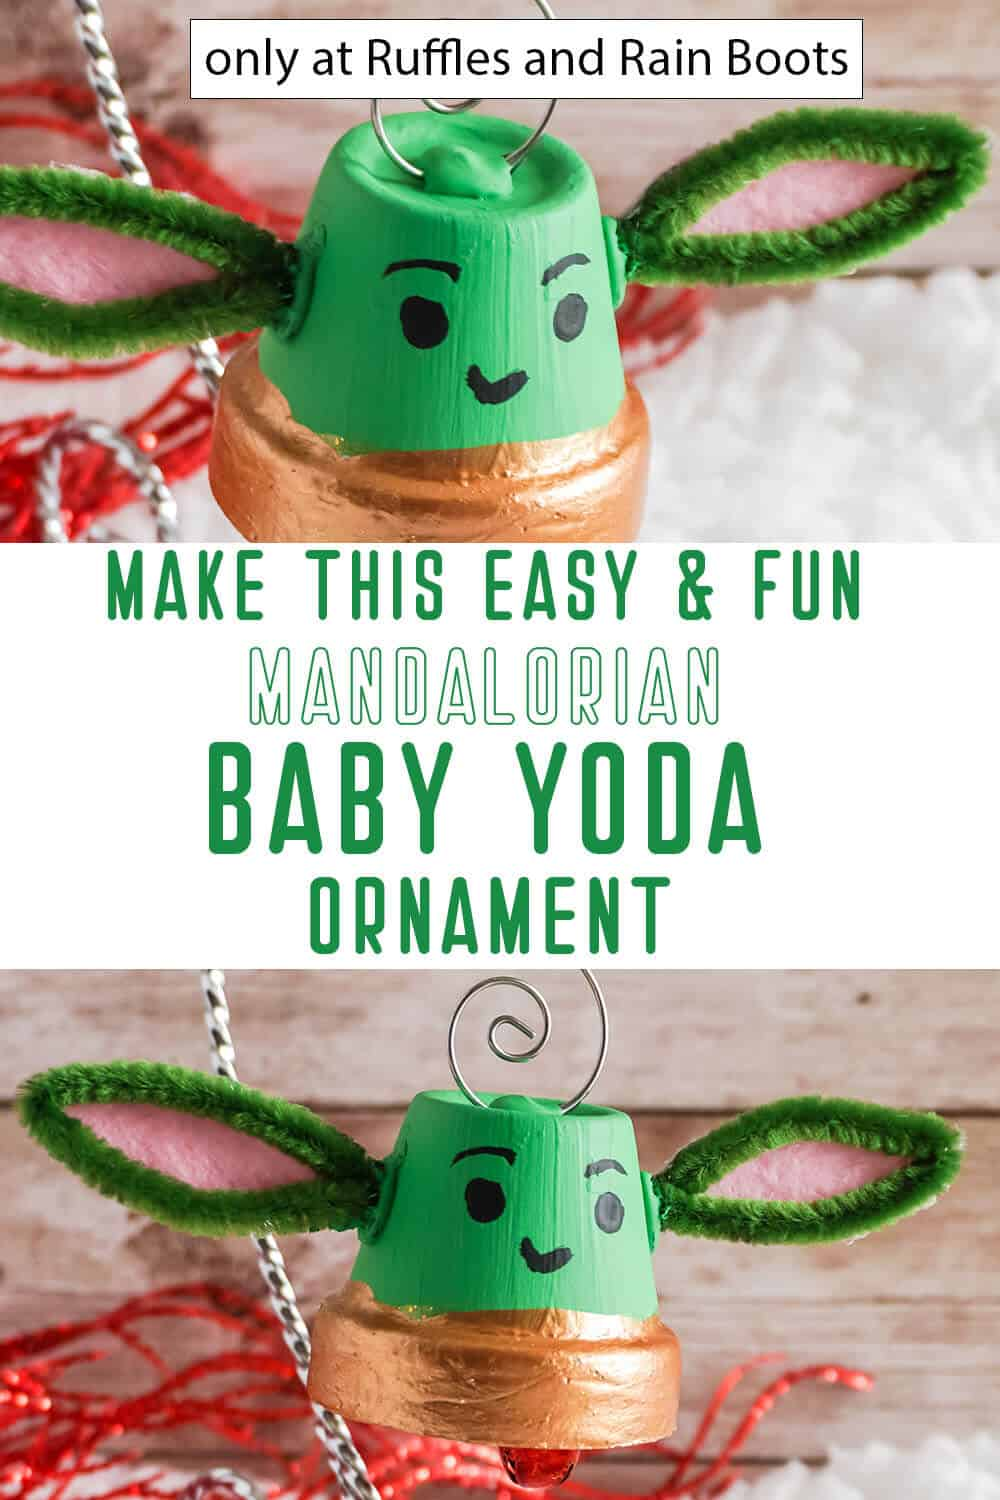 photo collage of christmas ornament baby yoda with text which reads make this easy & fun mandalorian baby yoda ornament